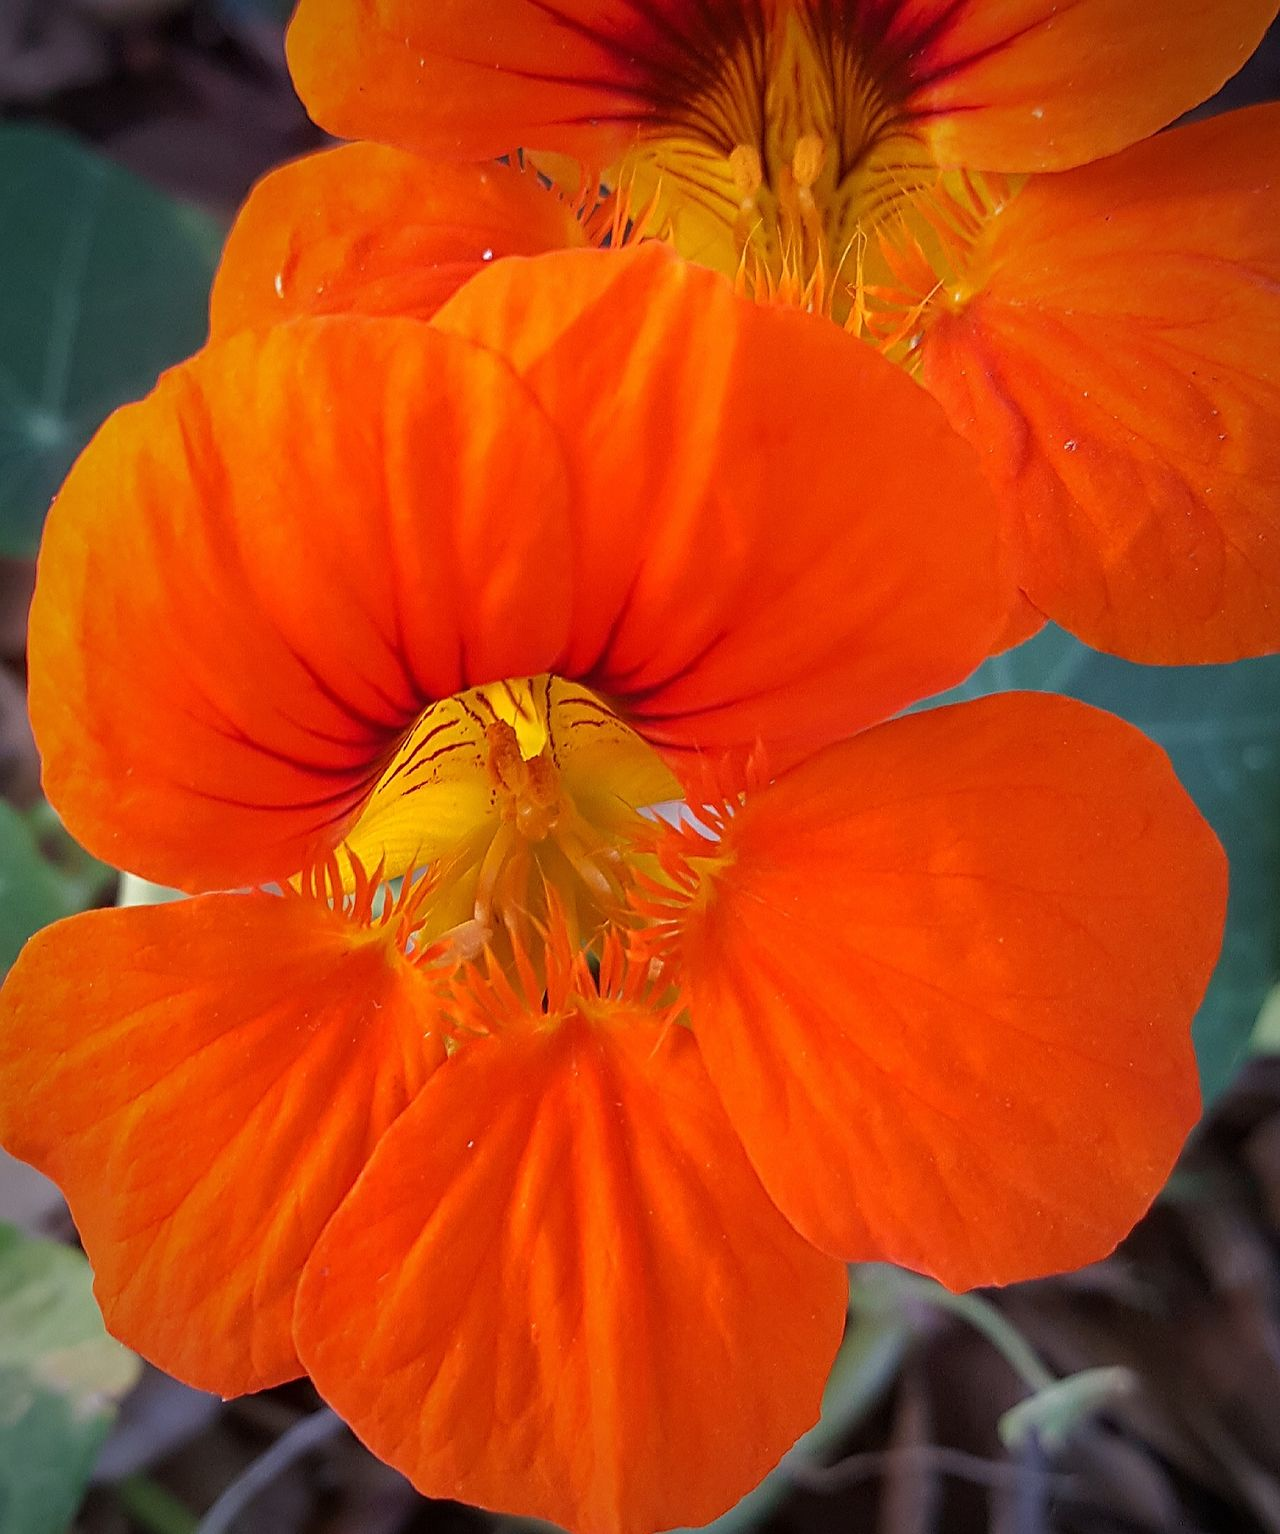 Flower Orange Color Flower Head Petal Plant Nature Poppy Beauty In Nature No People Freshness Growth Day Close-up Outdoors Fragility Day Lily They Came Back Nasturtium Pure Color EyeEm Gallery Blooming Just Pretty Orange Flowers